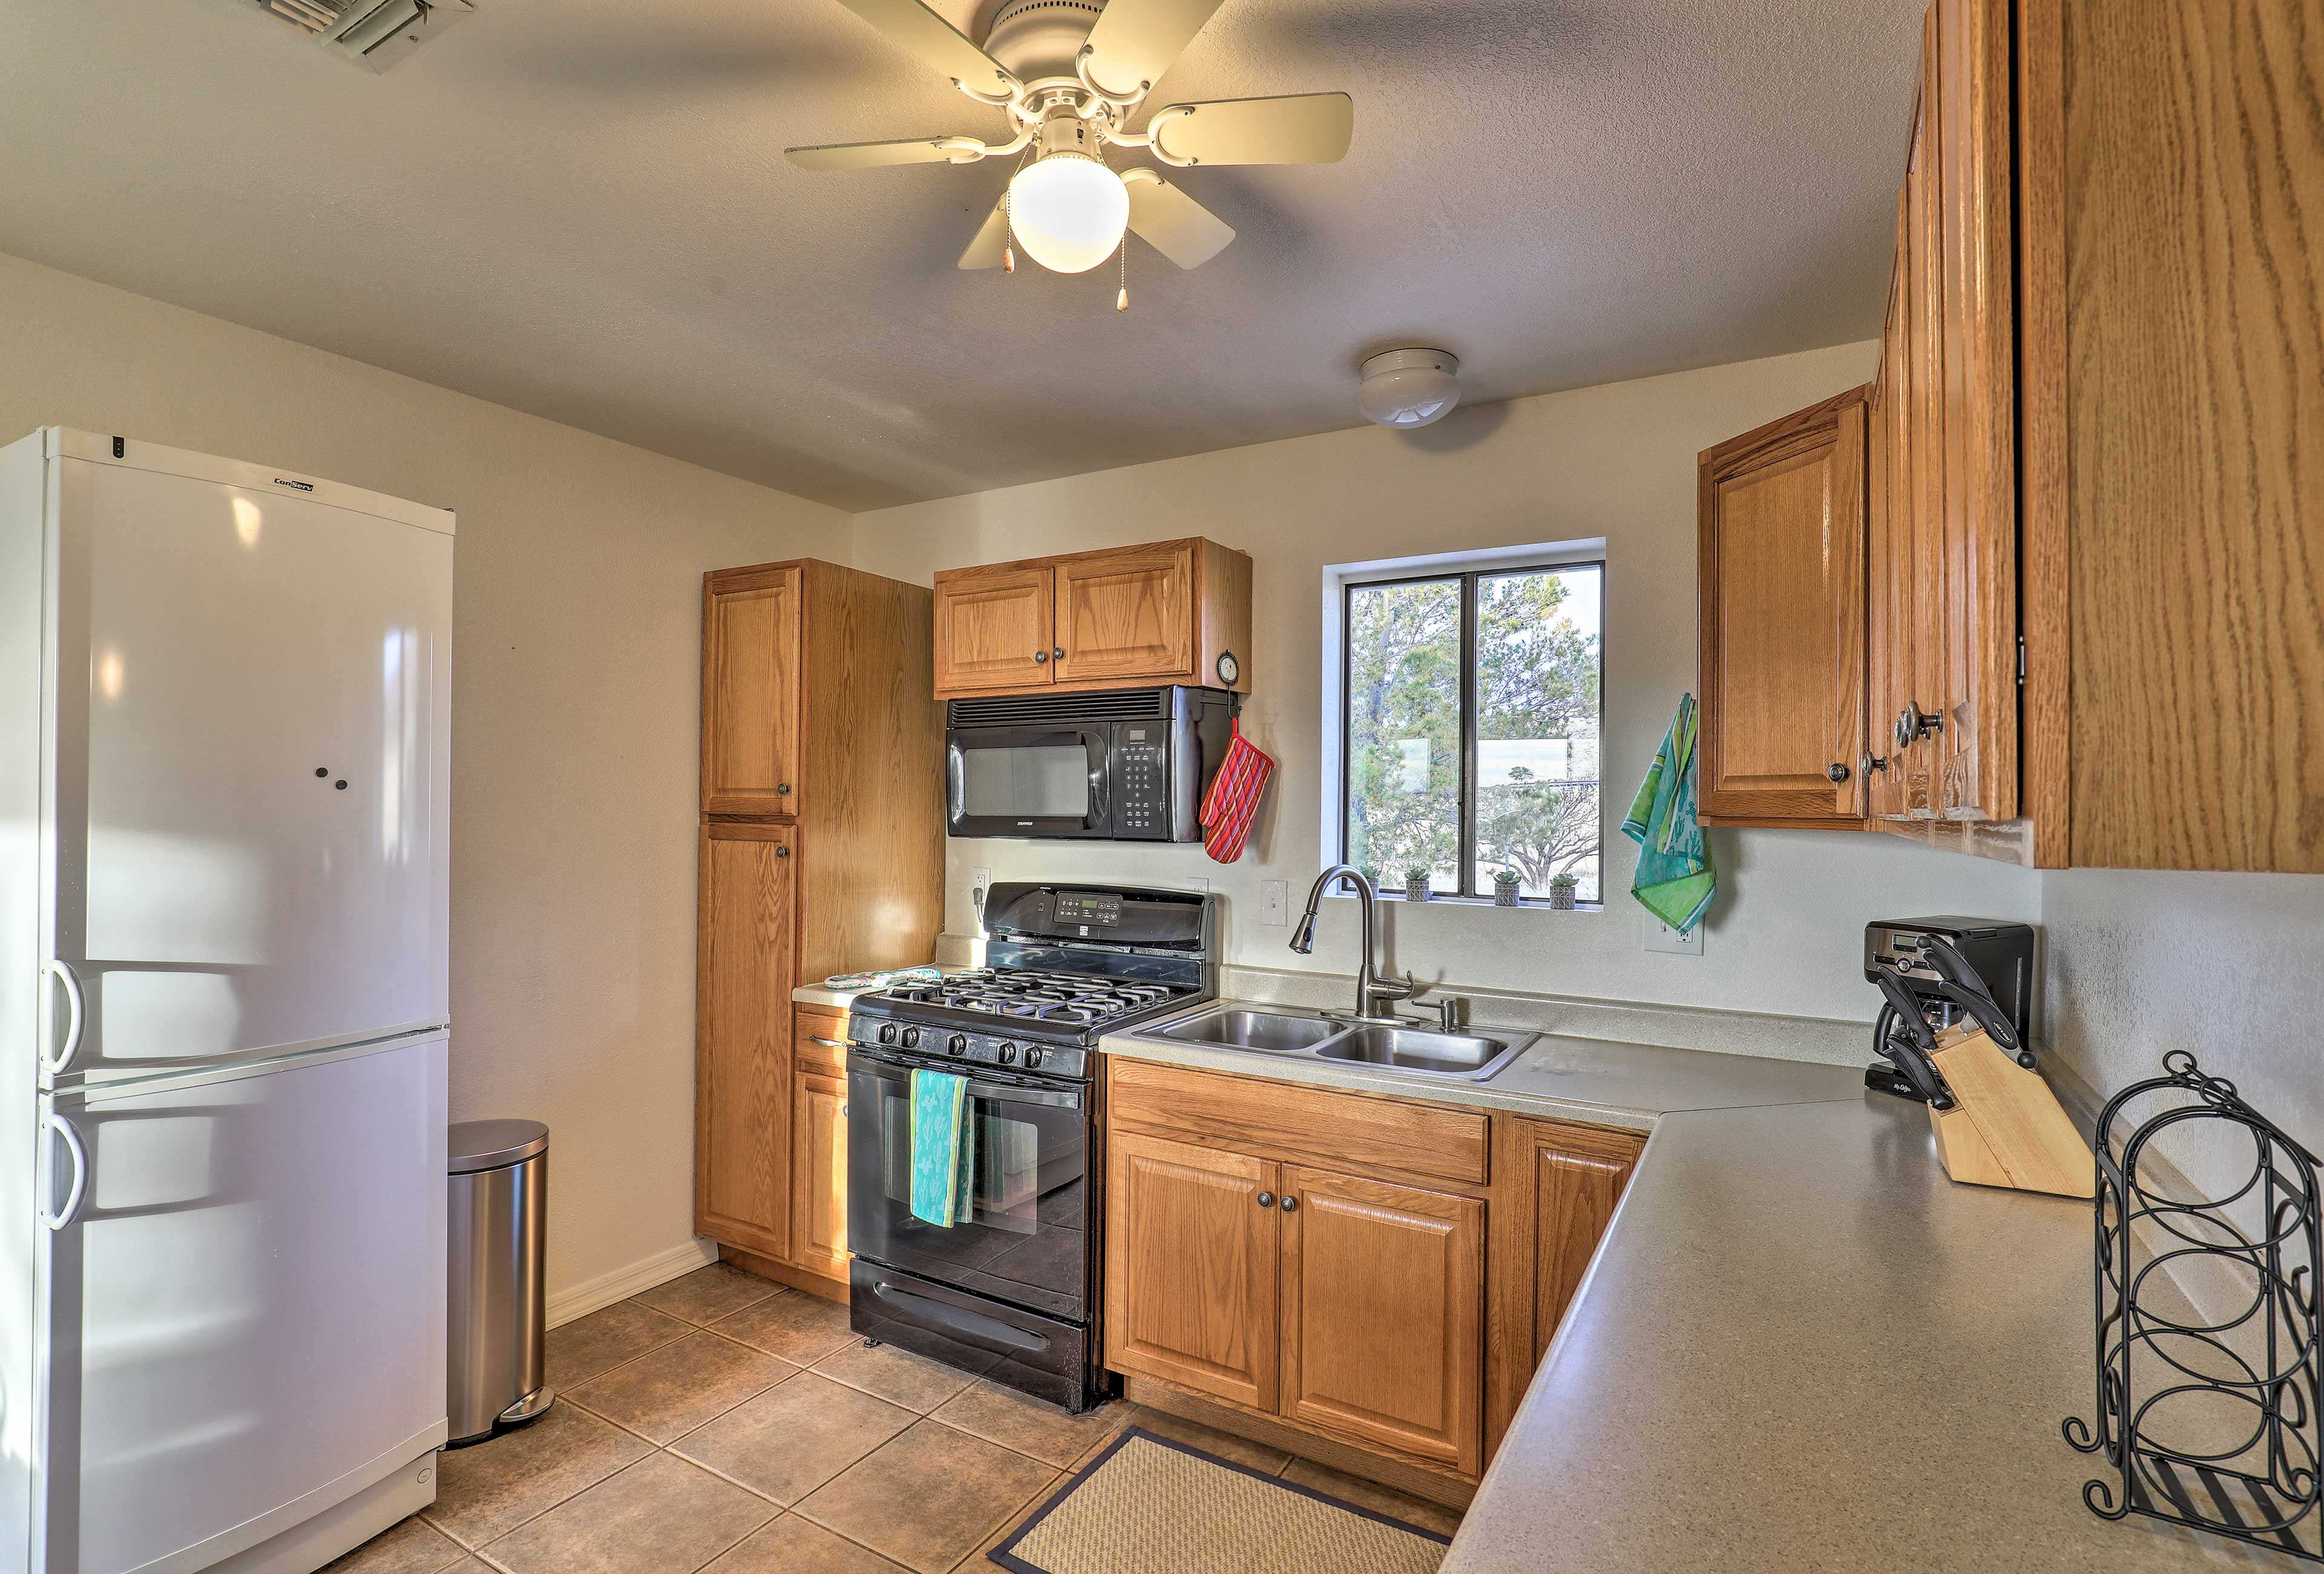 Prepare home-cooked meals in the well-equipped kitchen.